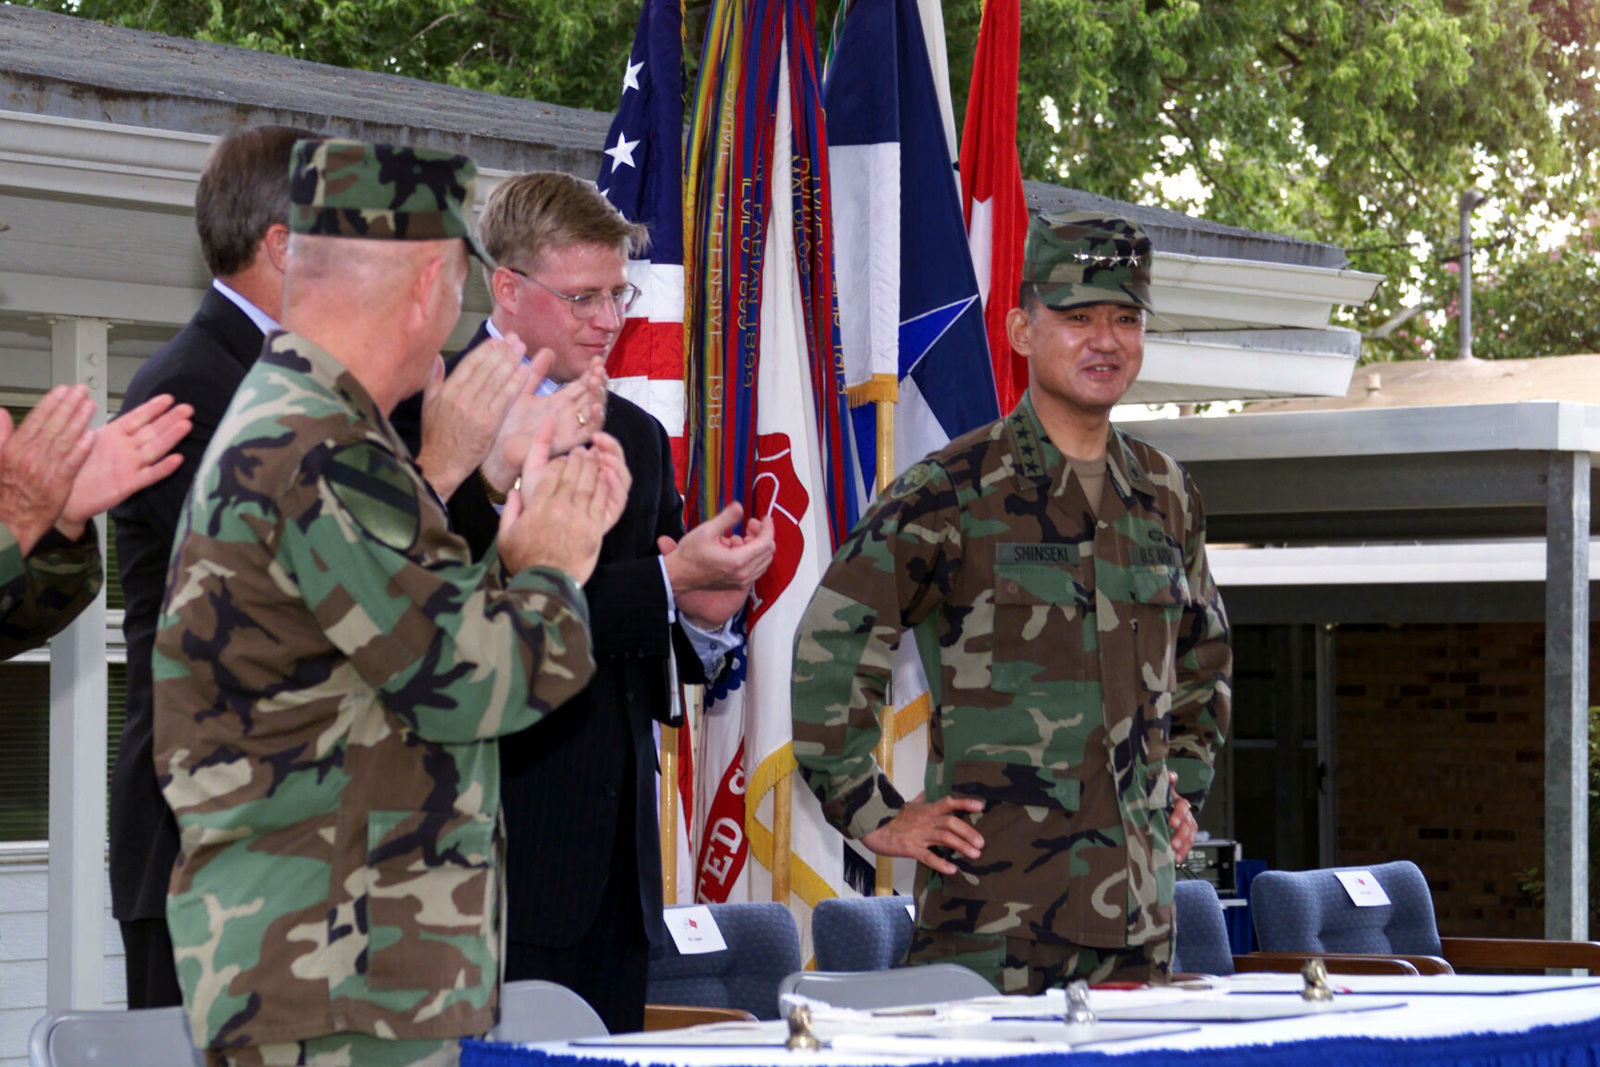 General Eric K. Shinseki, CHIEF of STAFF, US Army, is warmly greeted during the official Partnership Declaration Residential Communities Initiative signing ceremony. The landmark ceremony took place symbolically under a large Texas live oak in front of residential housing Building 5721-2, Fort Hood, Texas on 8 August 2000